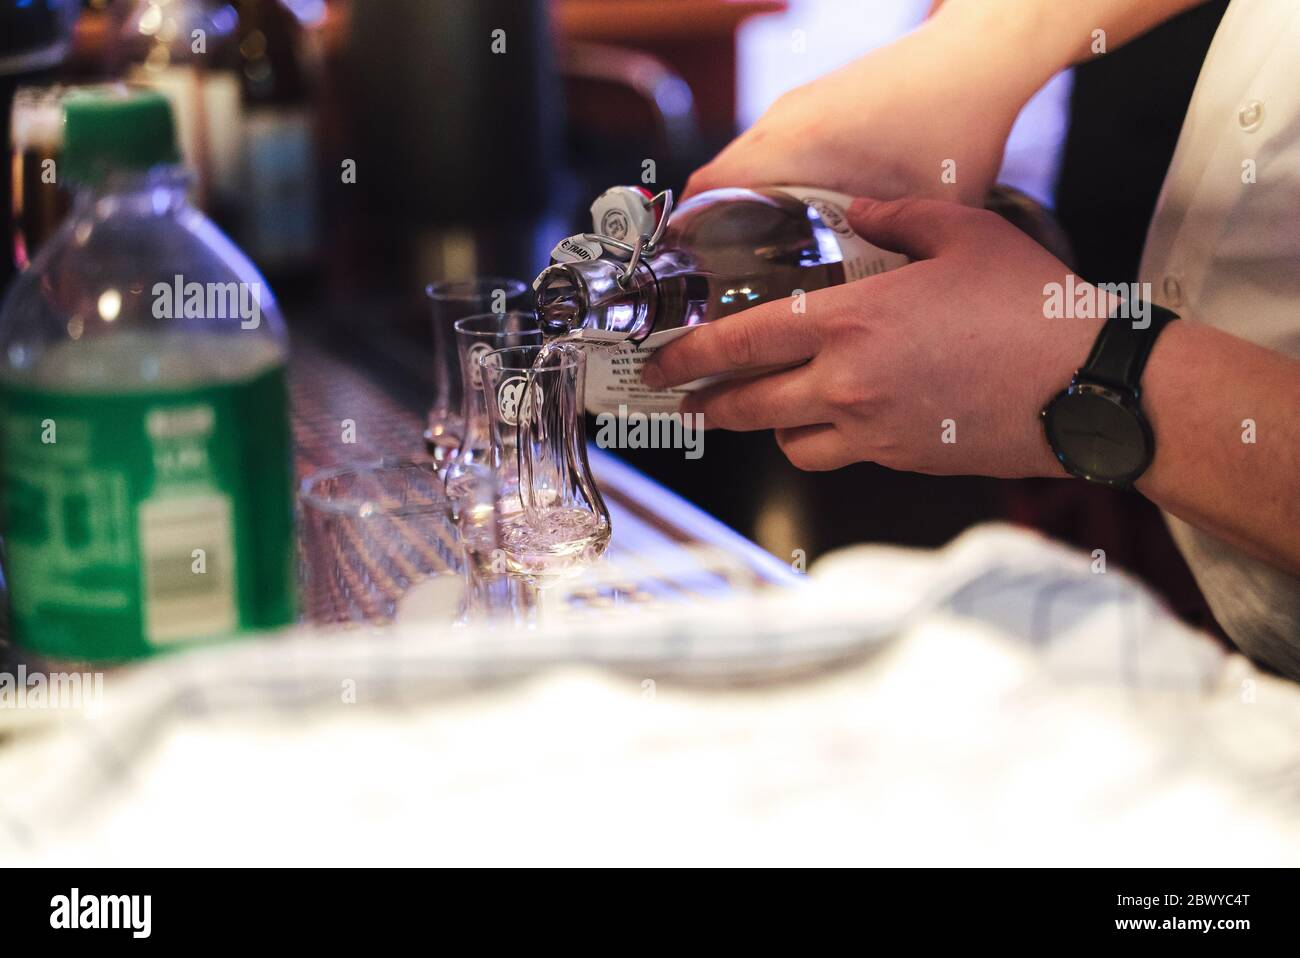 Man Preparing Drink At Bar Closeup Of Male Hands Pouring Transparent Alcoholic Drink From Bottle Celebration Birthday Party Wedding Concept Stock Photo Alamy